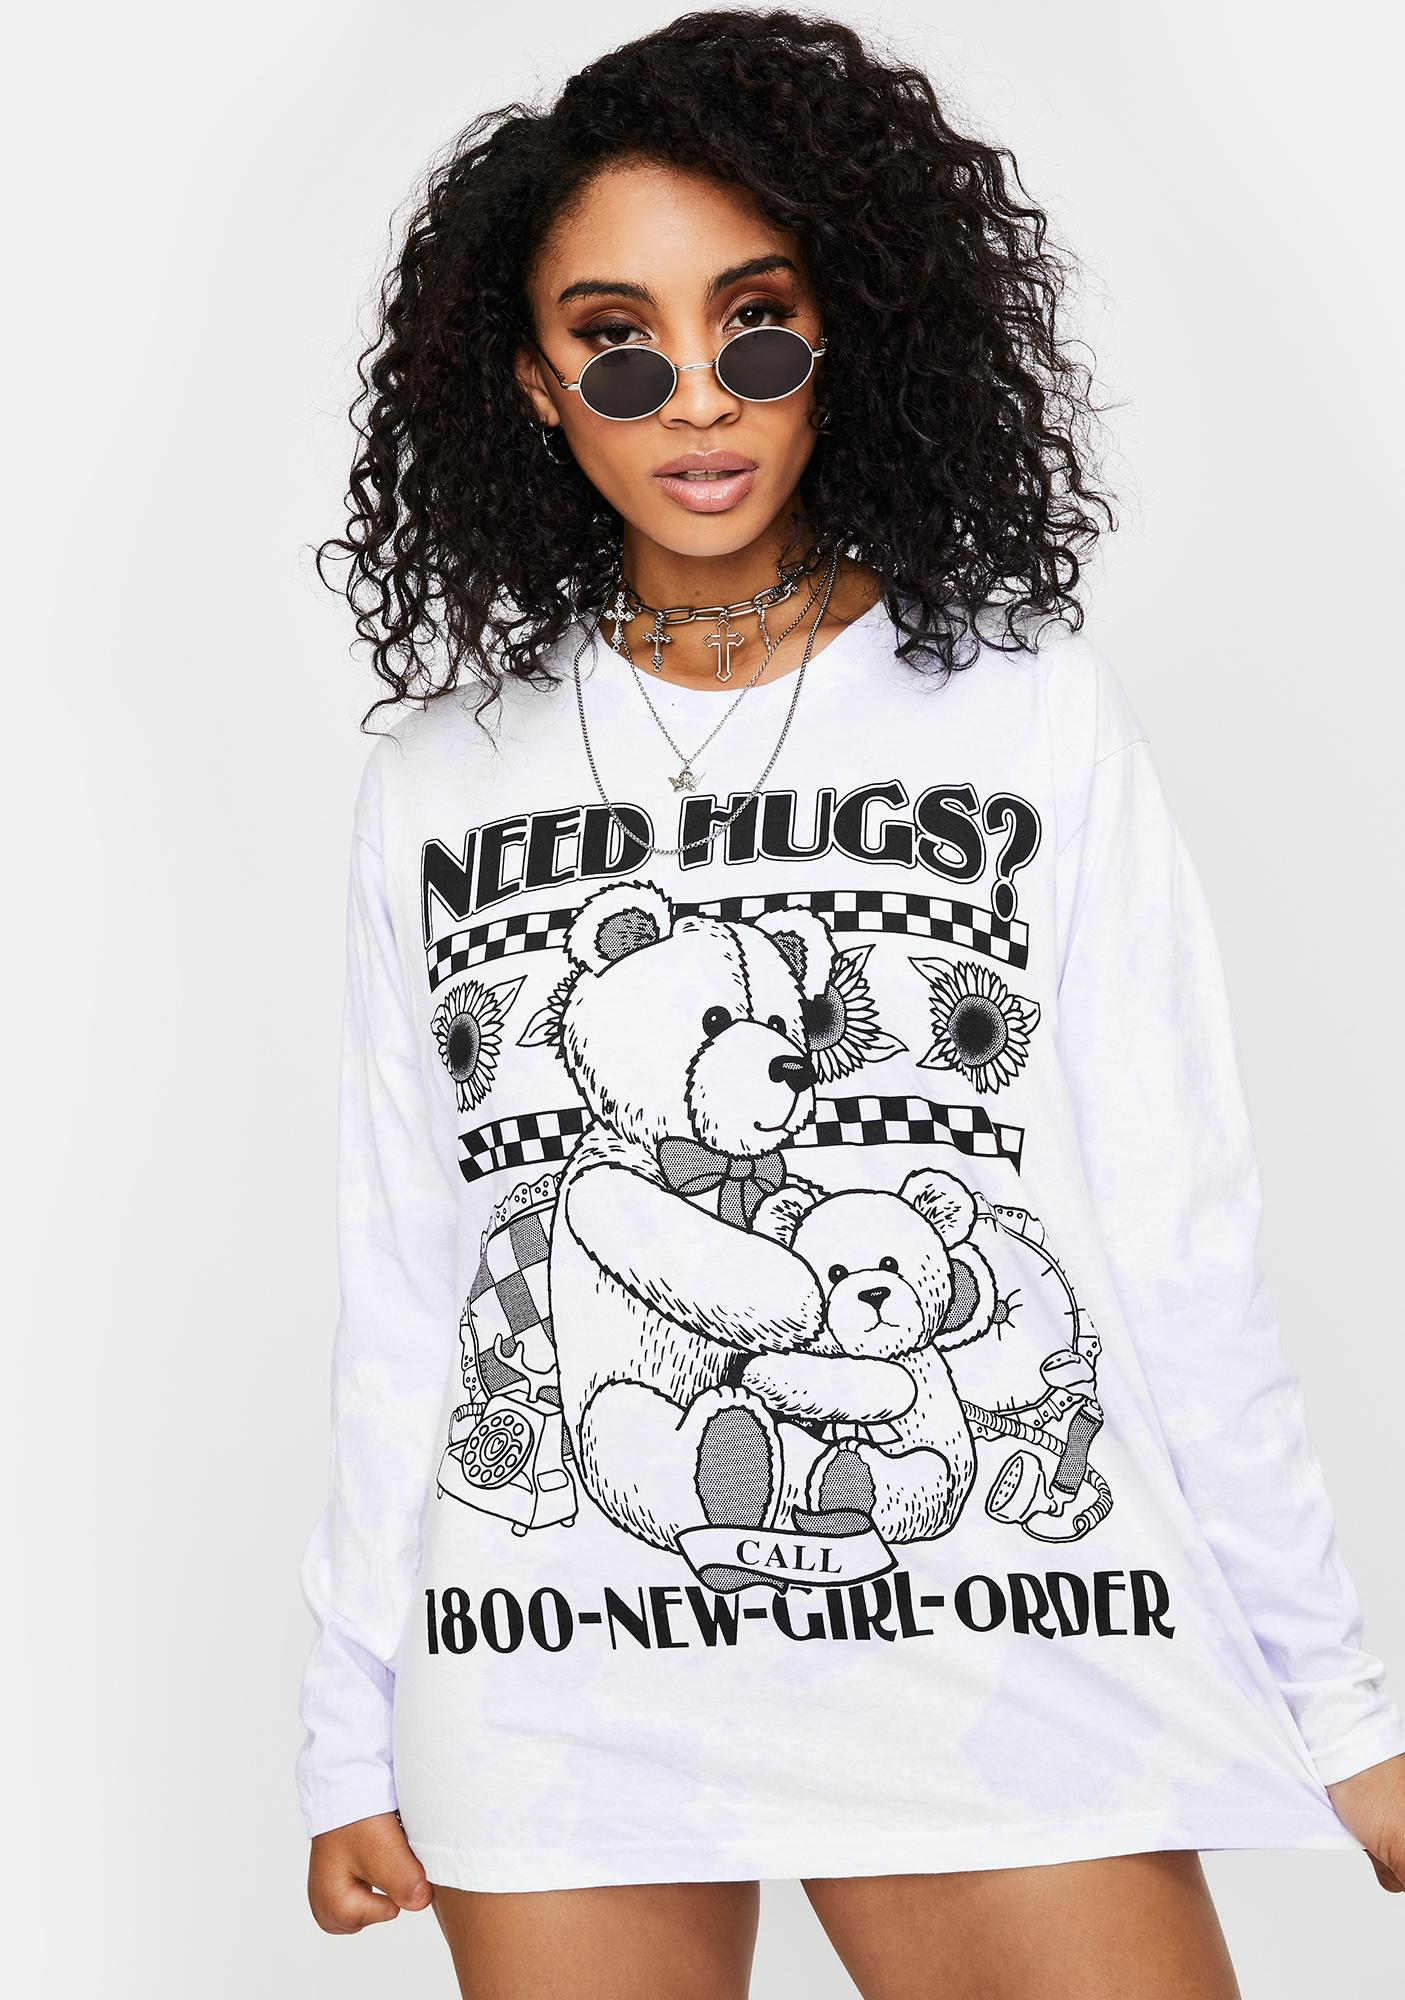 NEW GIRL ORDER Need Hugs Long Sleeve Tee